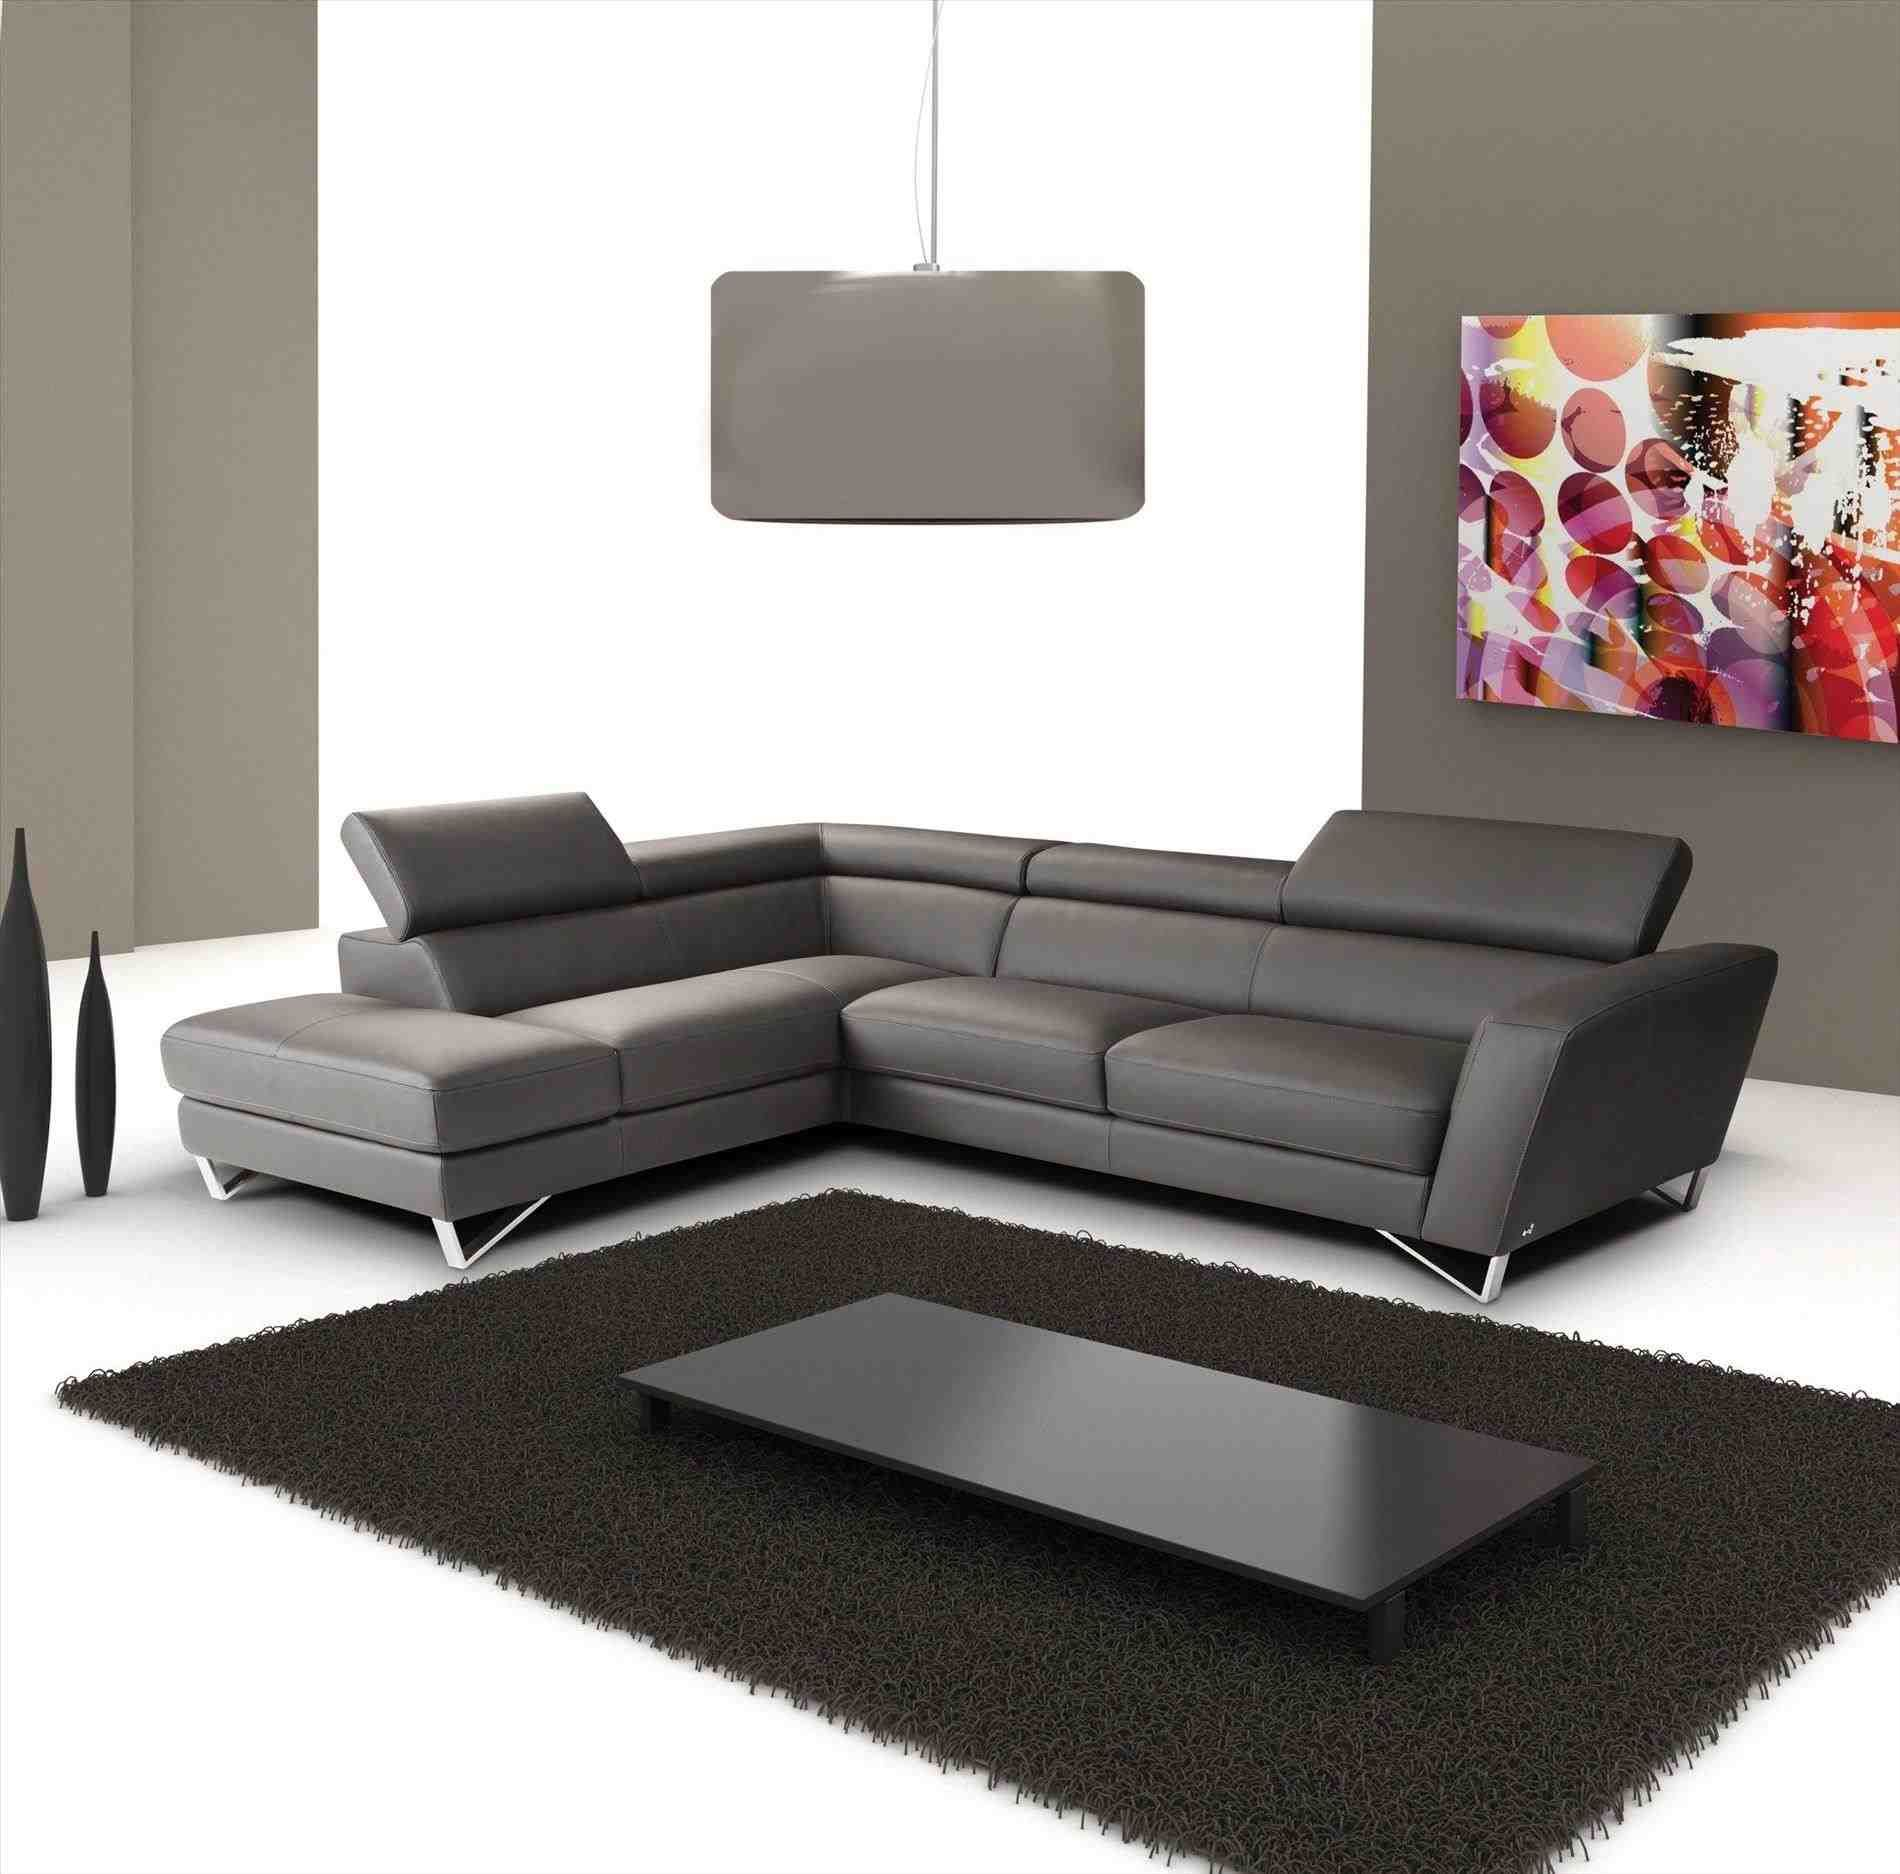 Ordinaire Cheap Sectionals Nyc   Stylex Nyc Sofa U0026 Dia Side Table. Cute Modern Sofa  Convertible